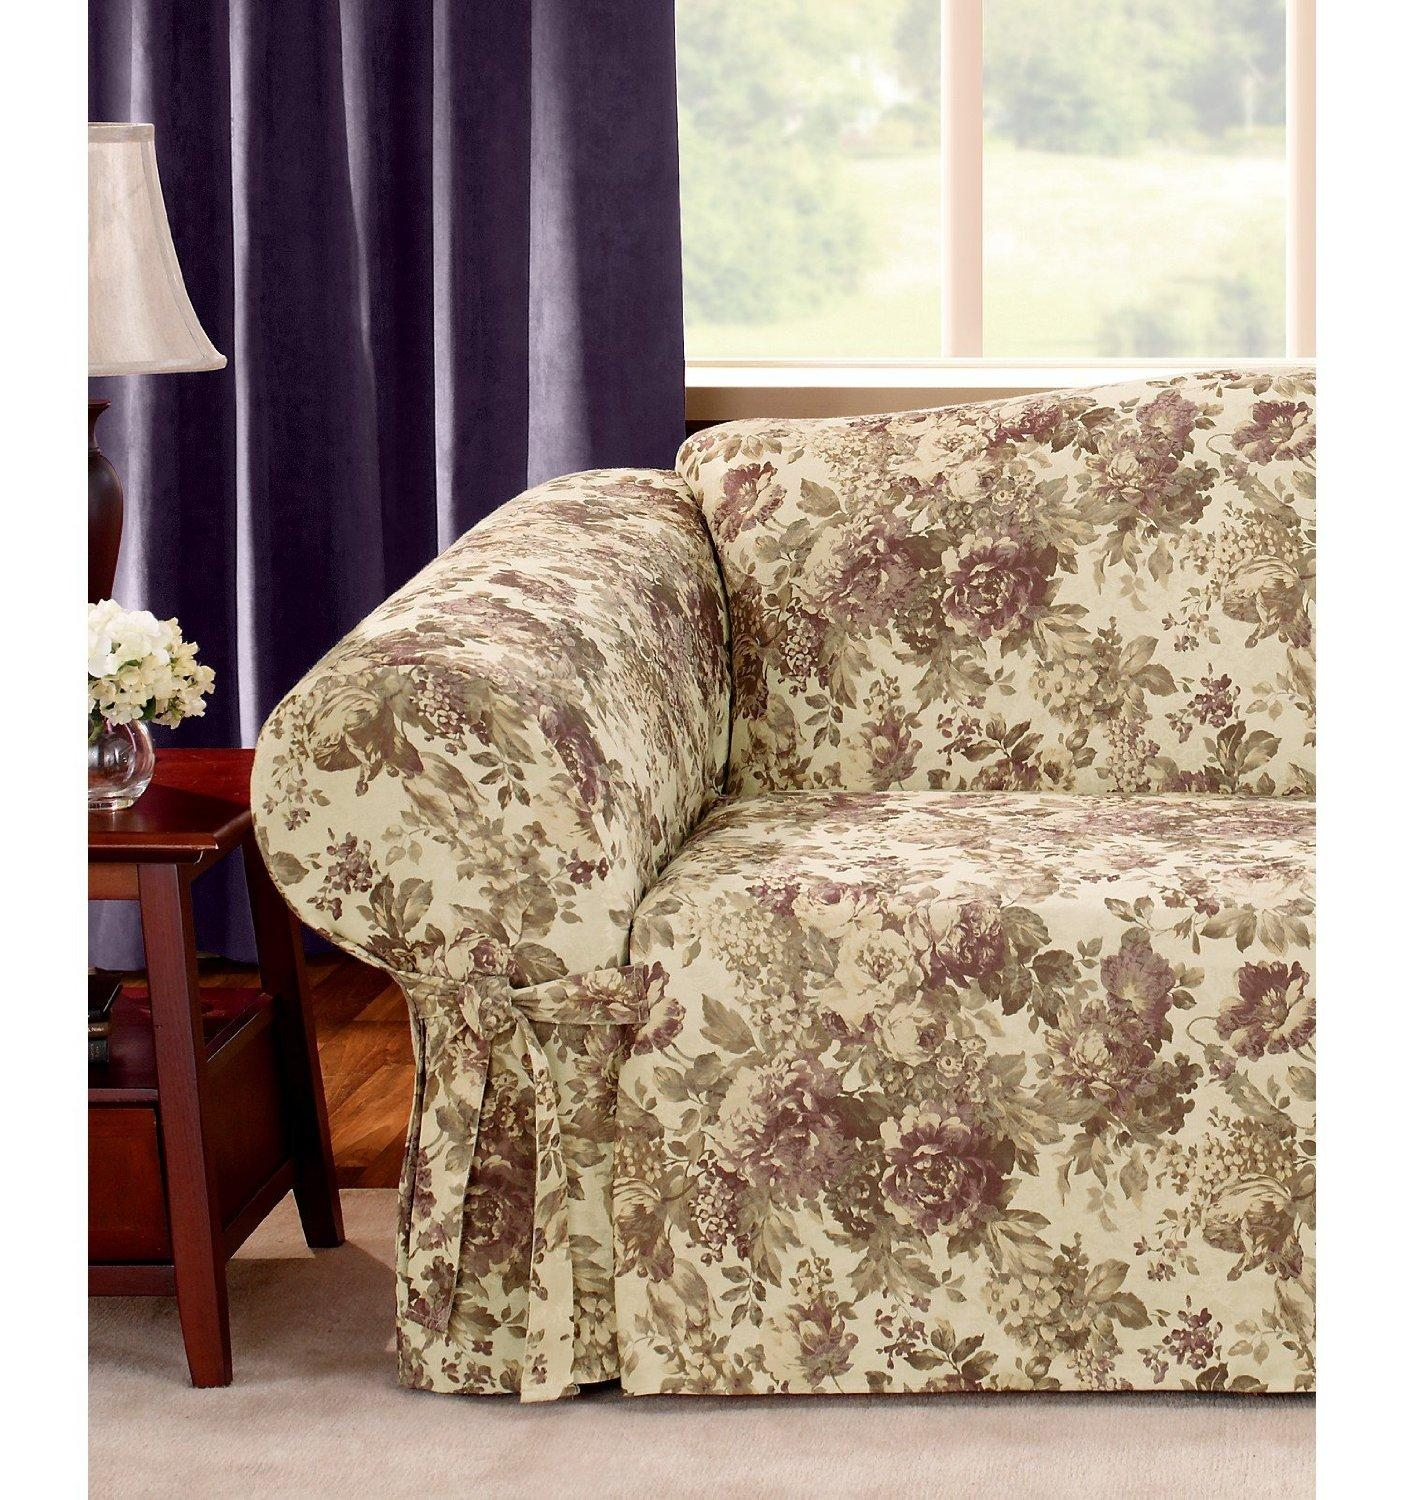 Sofas Center : Fashion Font Floral Sofa Cover Tight Wrap Stretchy Regarding Floral Sofa Slipcovers (View 12 of 20)